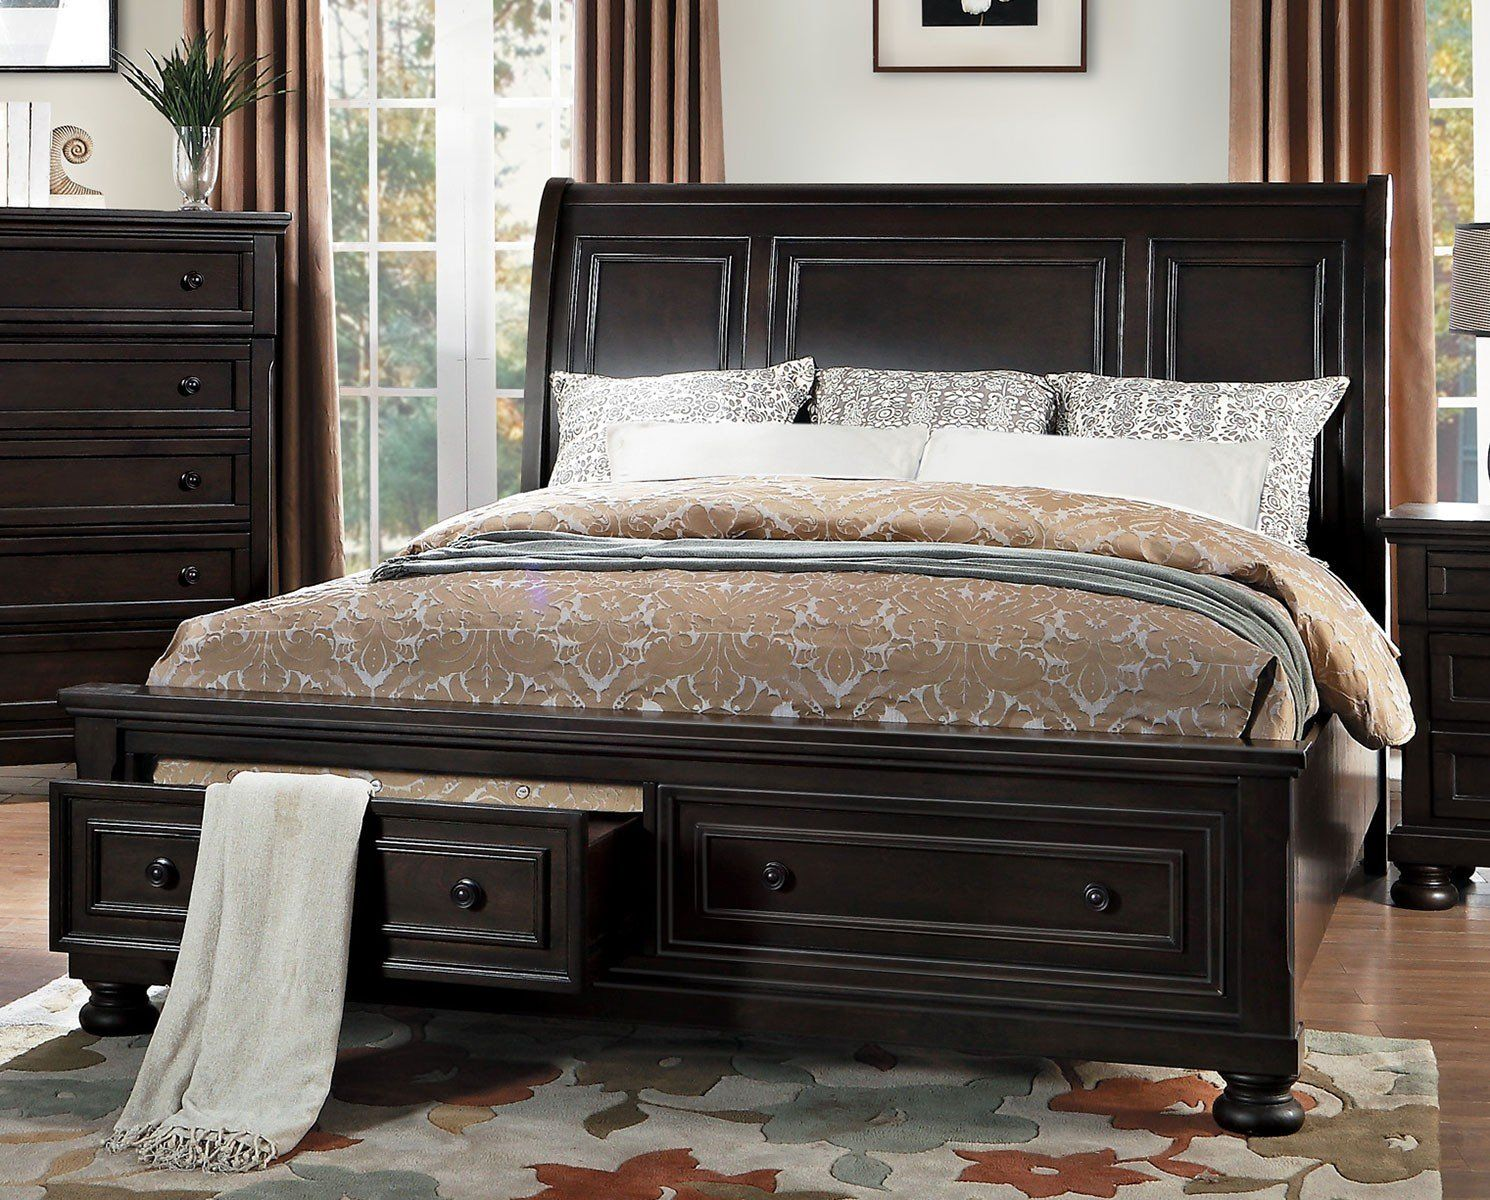 Begonia 1718gy 1 country casual gray storage queen sleigh platform bed